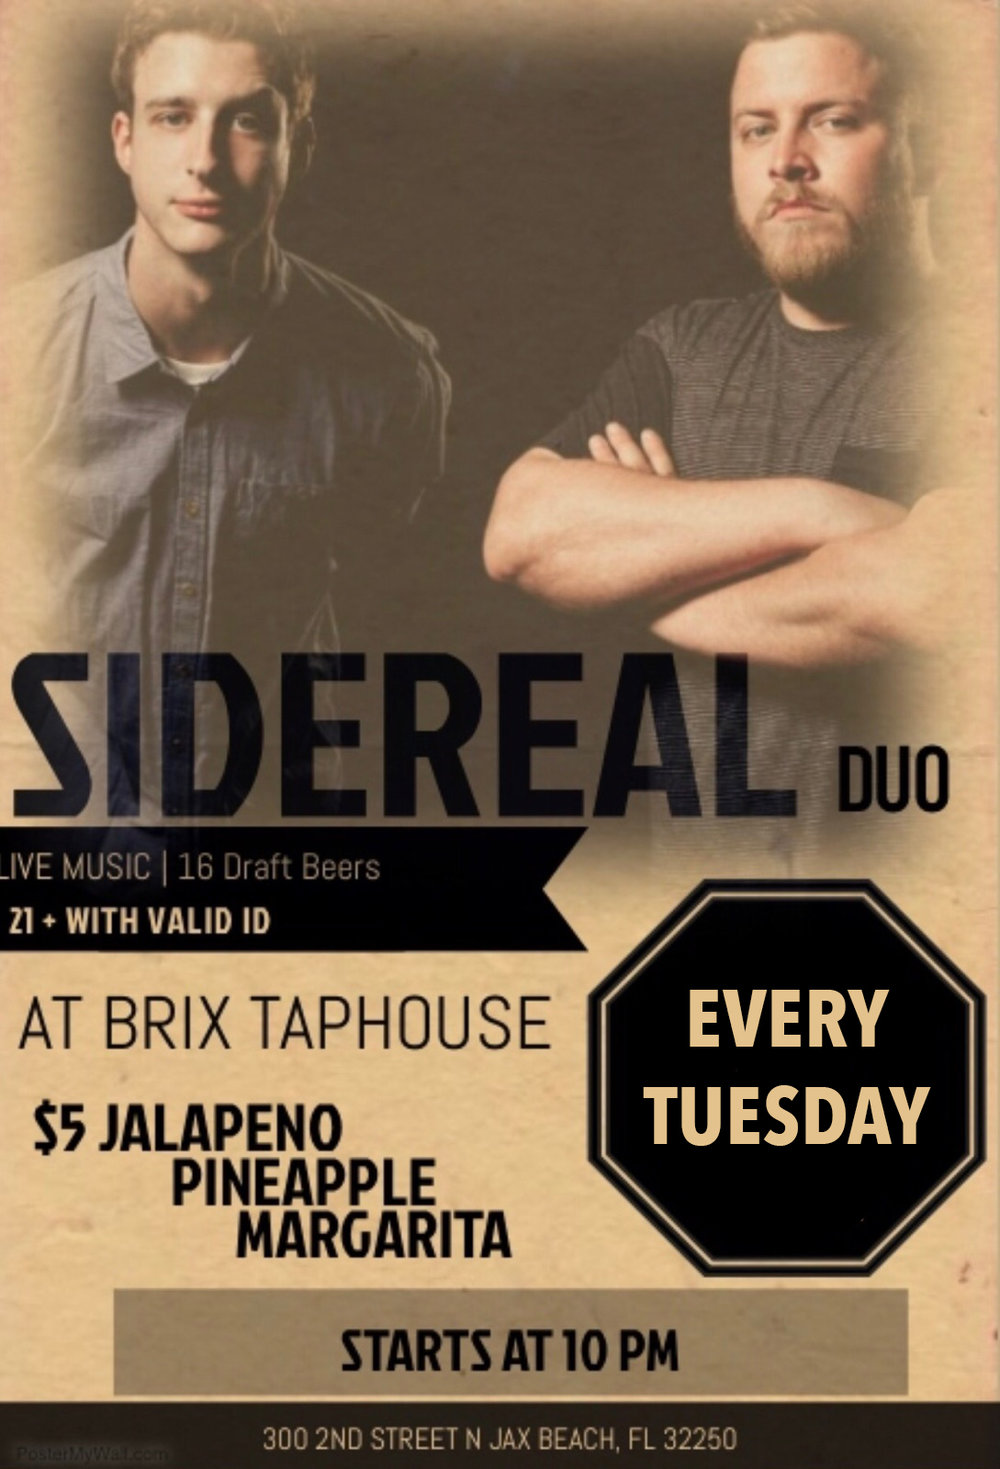 Tuesdays - Live music at 10pm with Sidereal duo.$5 Palomas and Margarita. $3 Maestro Dobel tequila. Happy Hour midnight til close.